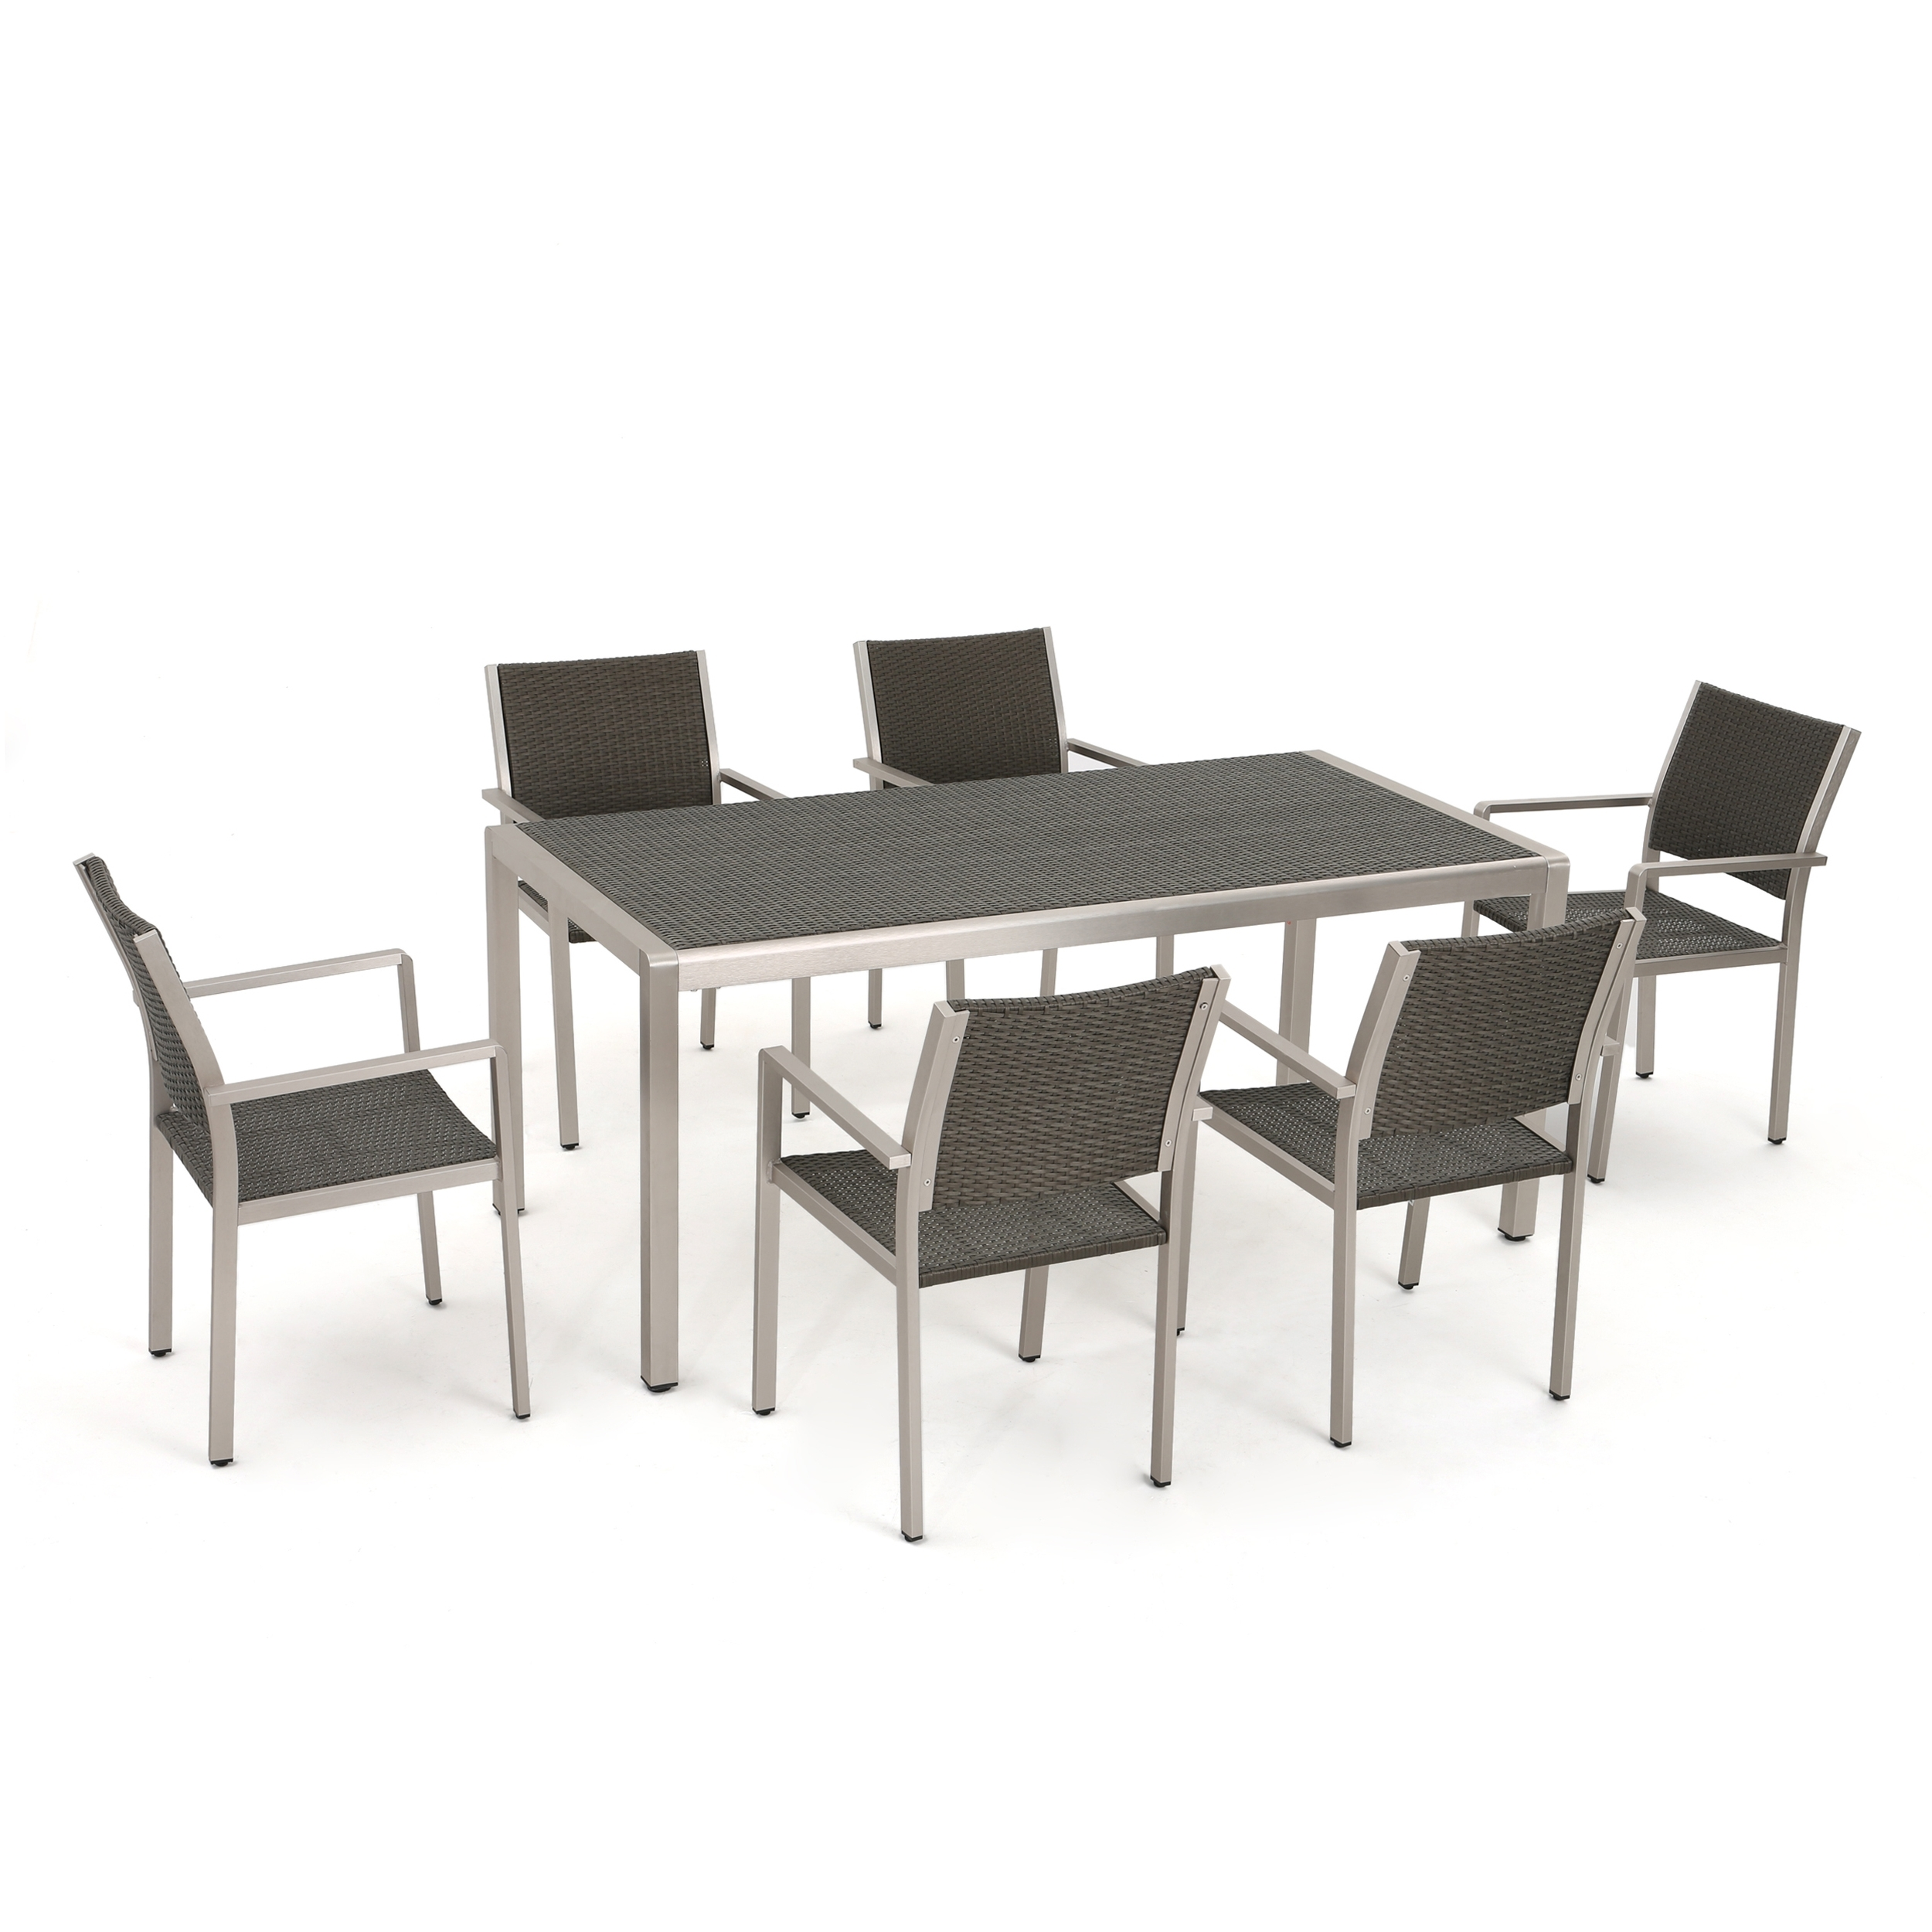 2017 Cora 7 Piece Dining Sets in Coral Bay Outdoor 7 Piece Aluminum Dining Set With Wicker Top, Grey